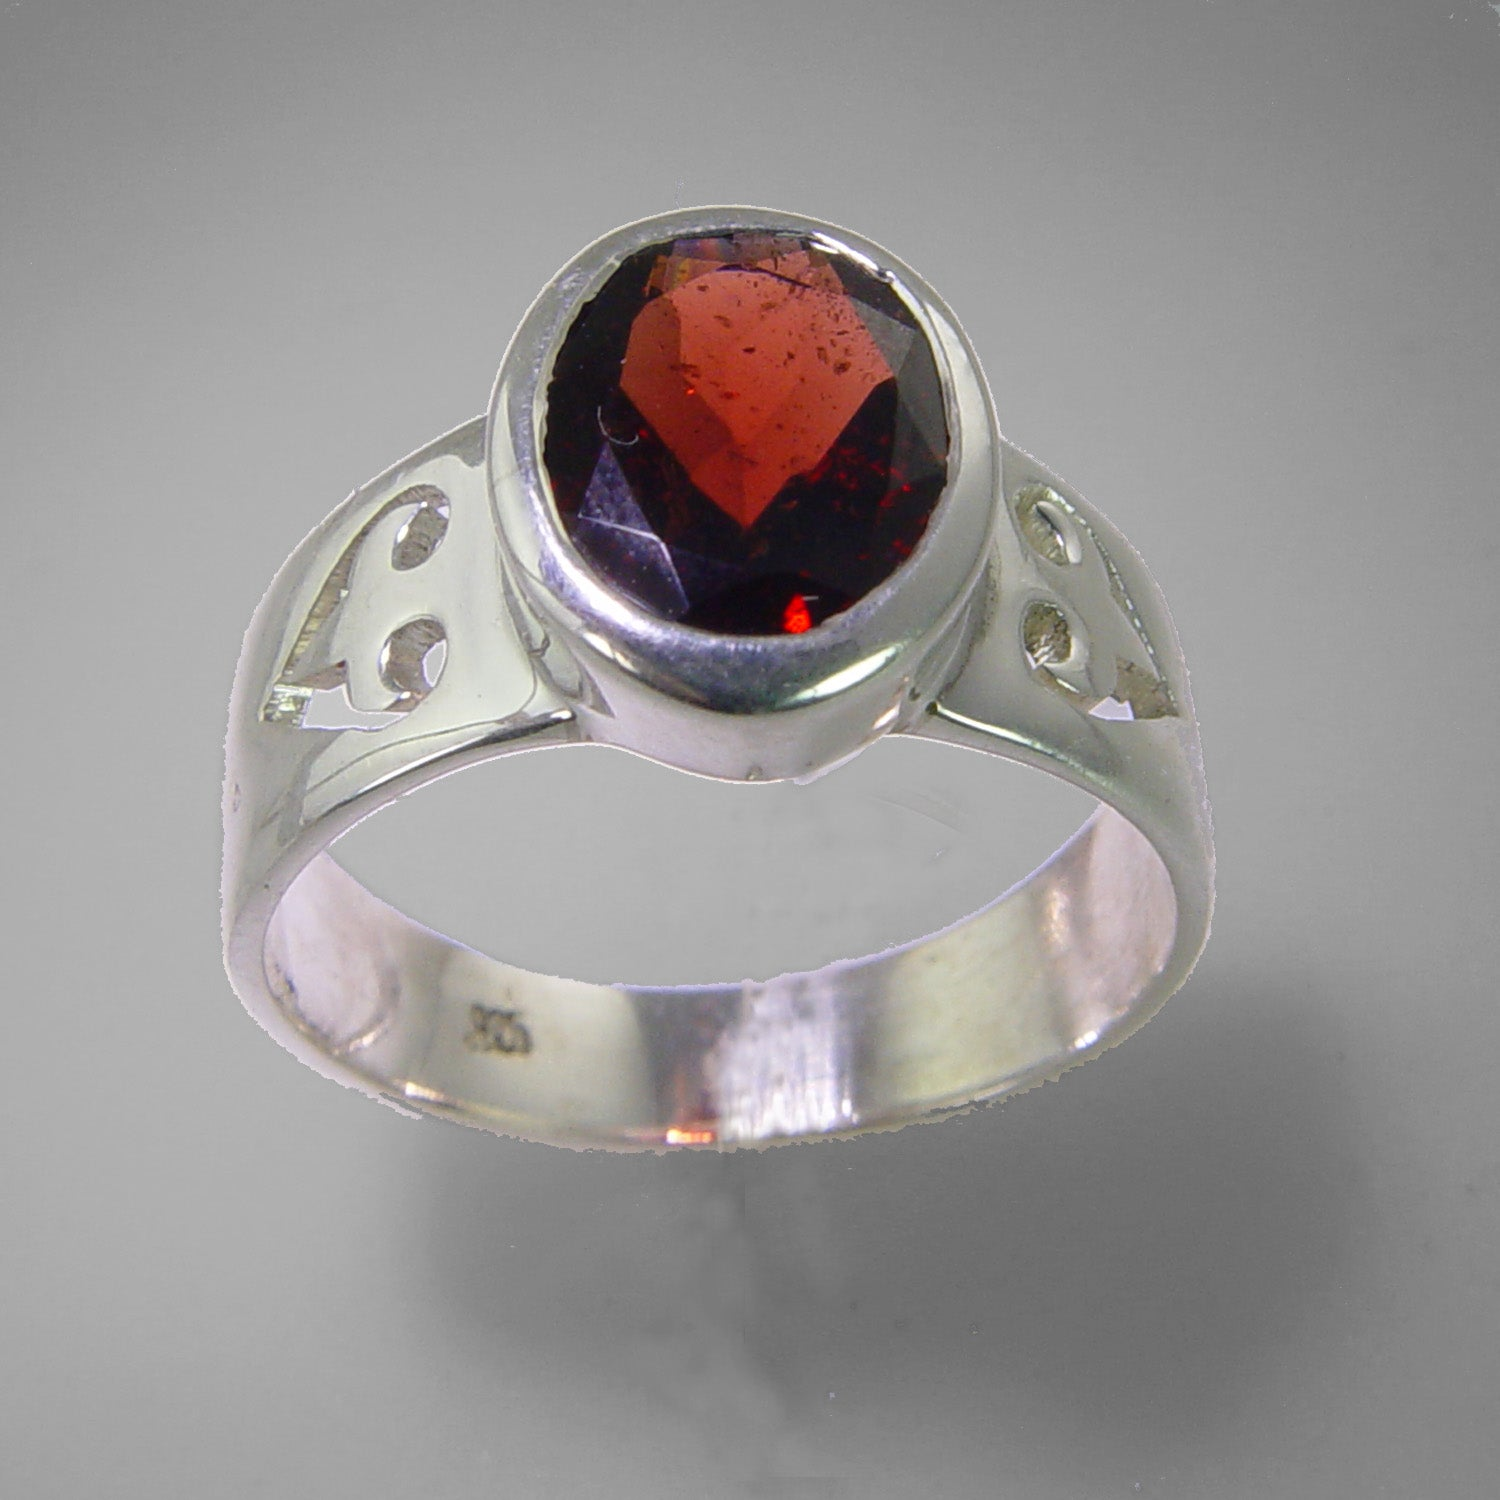 Garnet 3.83 ct Oval Sterling Silver Ring, Size 7